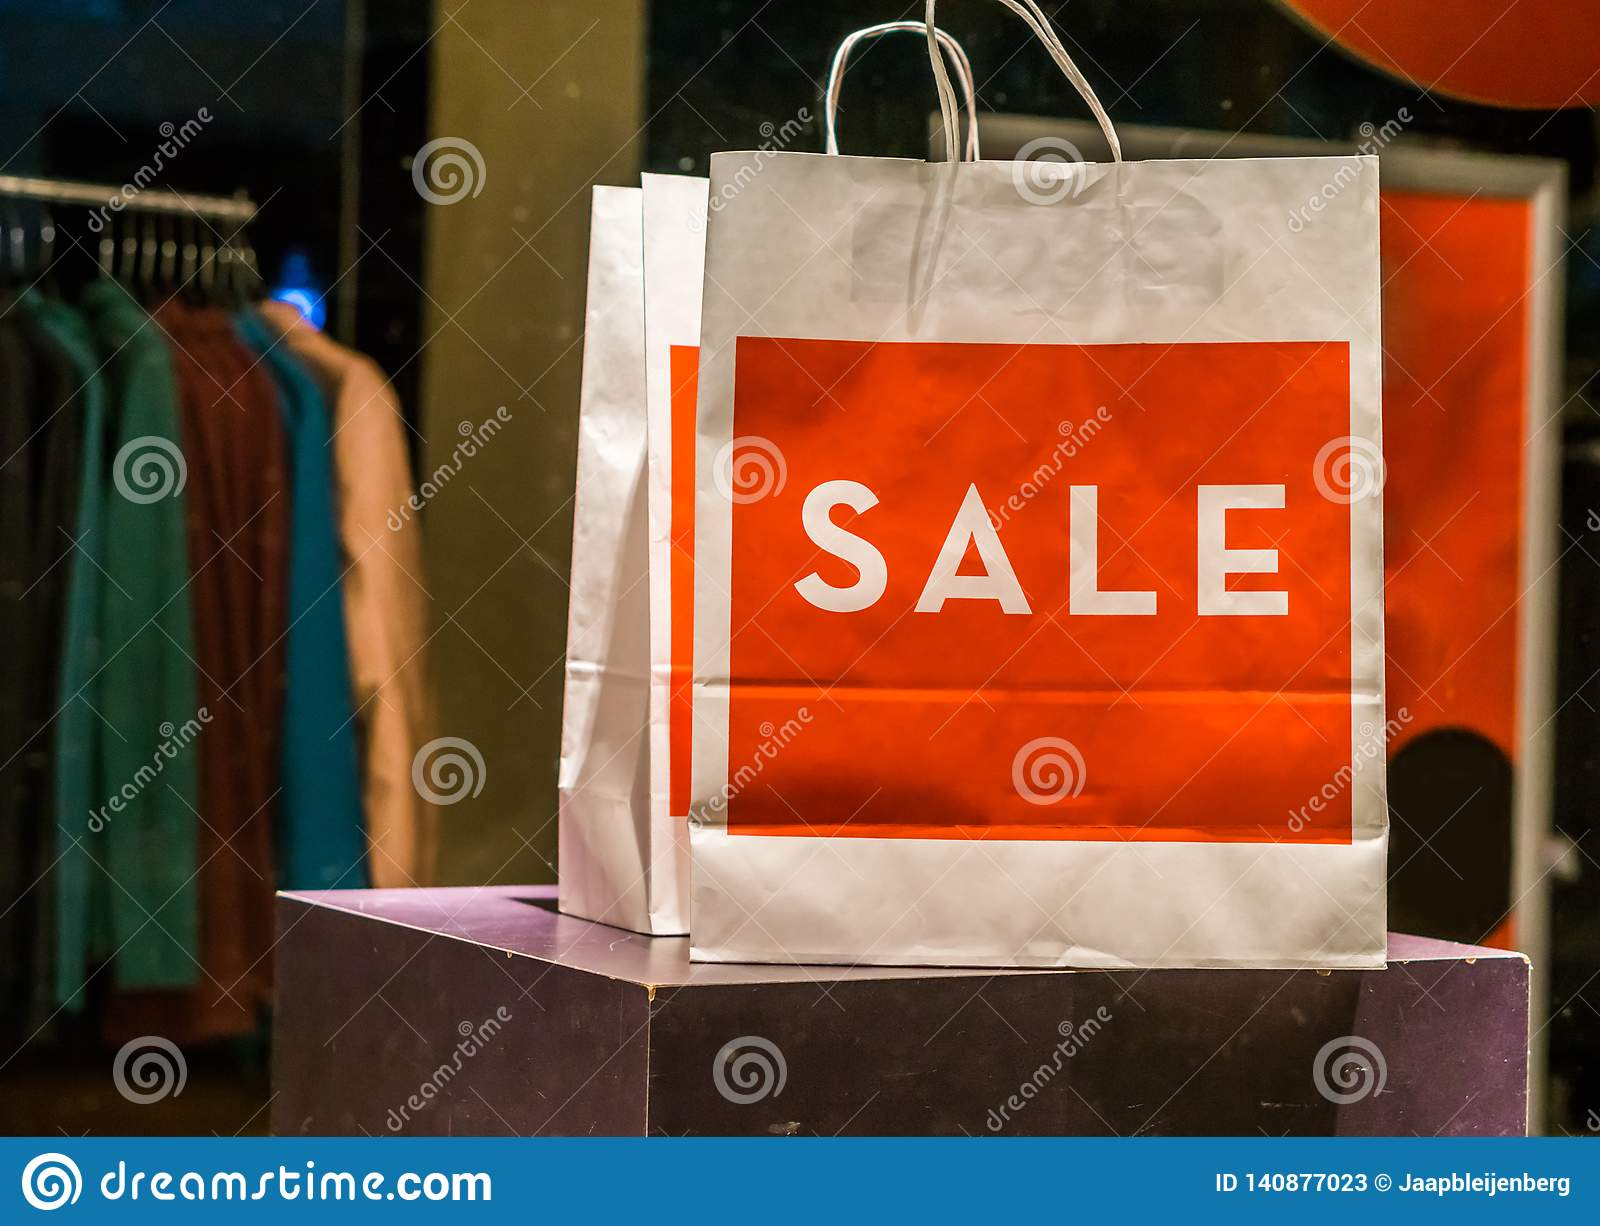 Paper bag for shopping sale, environment friendly bag, fashion industry publicity